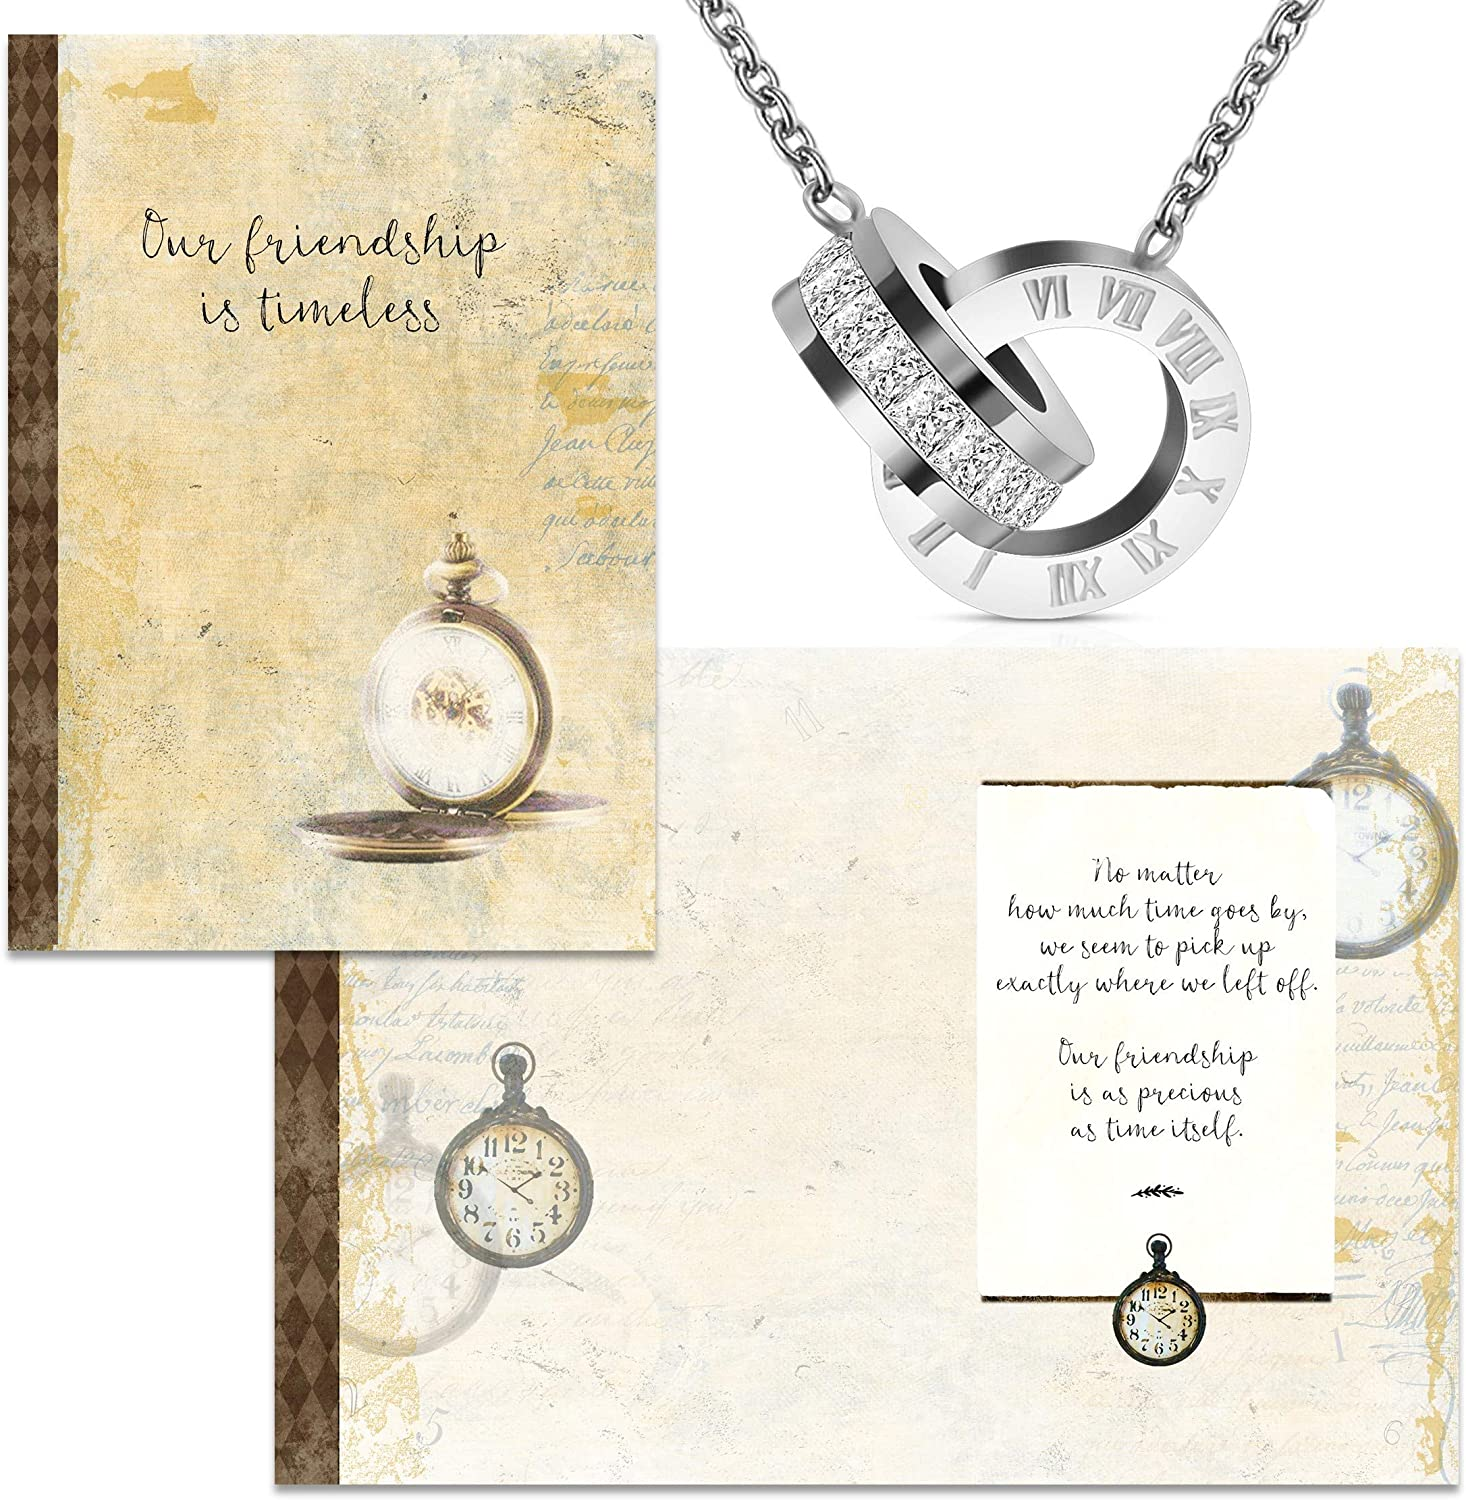 Smiling Wisdom - Timeless Friend Special Friendship Greeting Card With Time and CZ Intertwined Ring Necklace Gift Set - Woman Best BFF Bestie - Silver Color - Stainless Steel